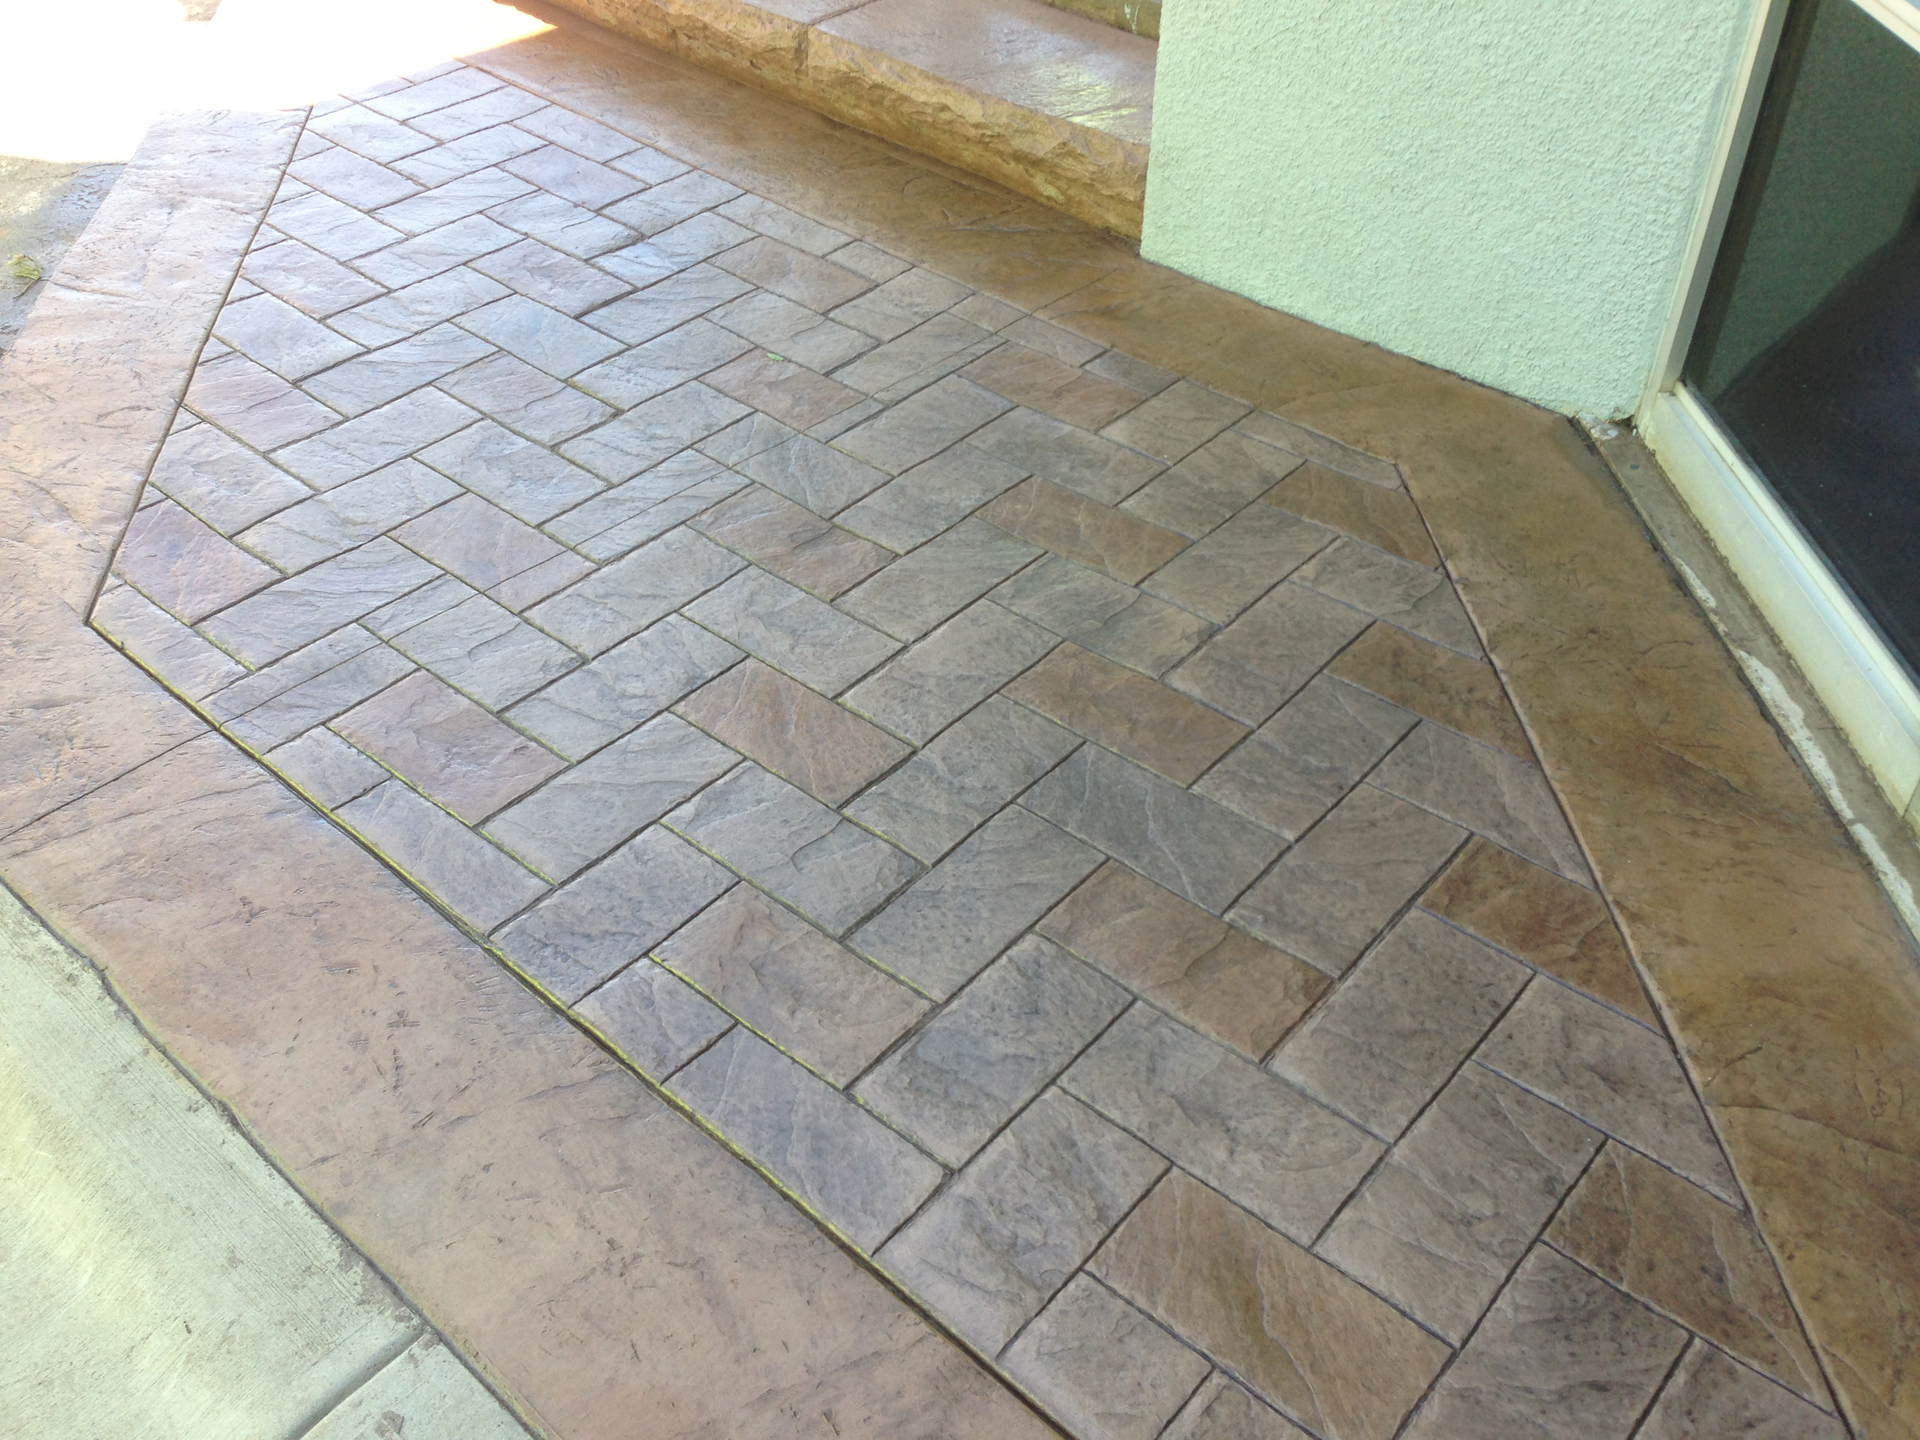 Brickform Large Herringbone FM1700, Solomon Colors Rawhide, Brickform RA Smokey Beige, Artesian Stains, GemSeal